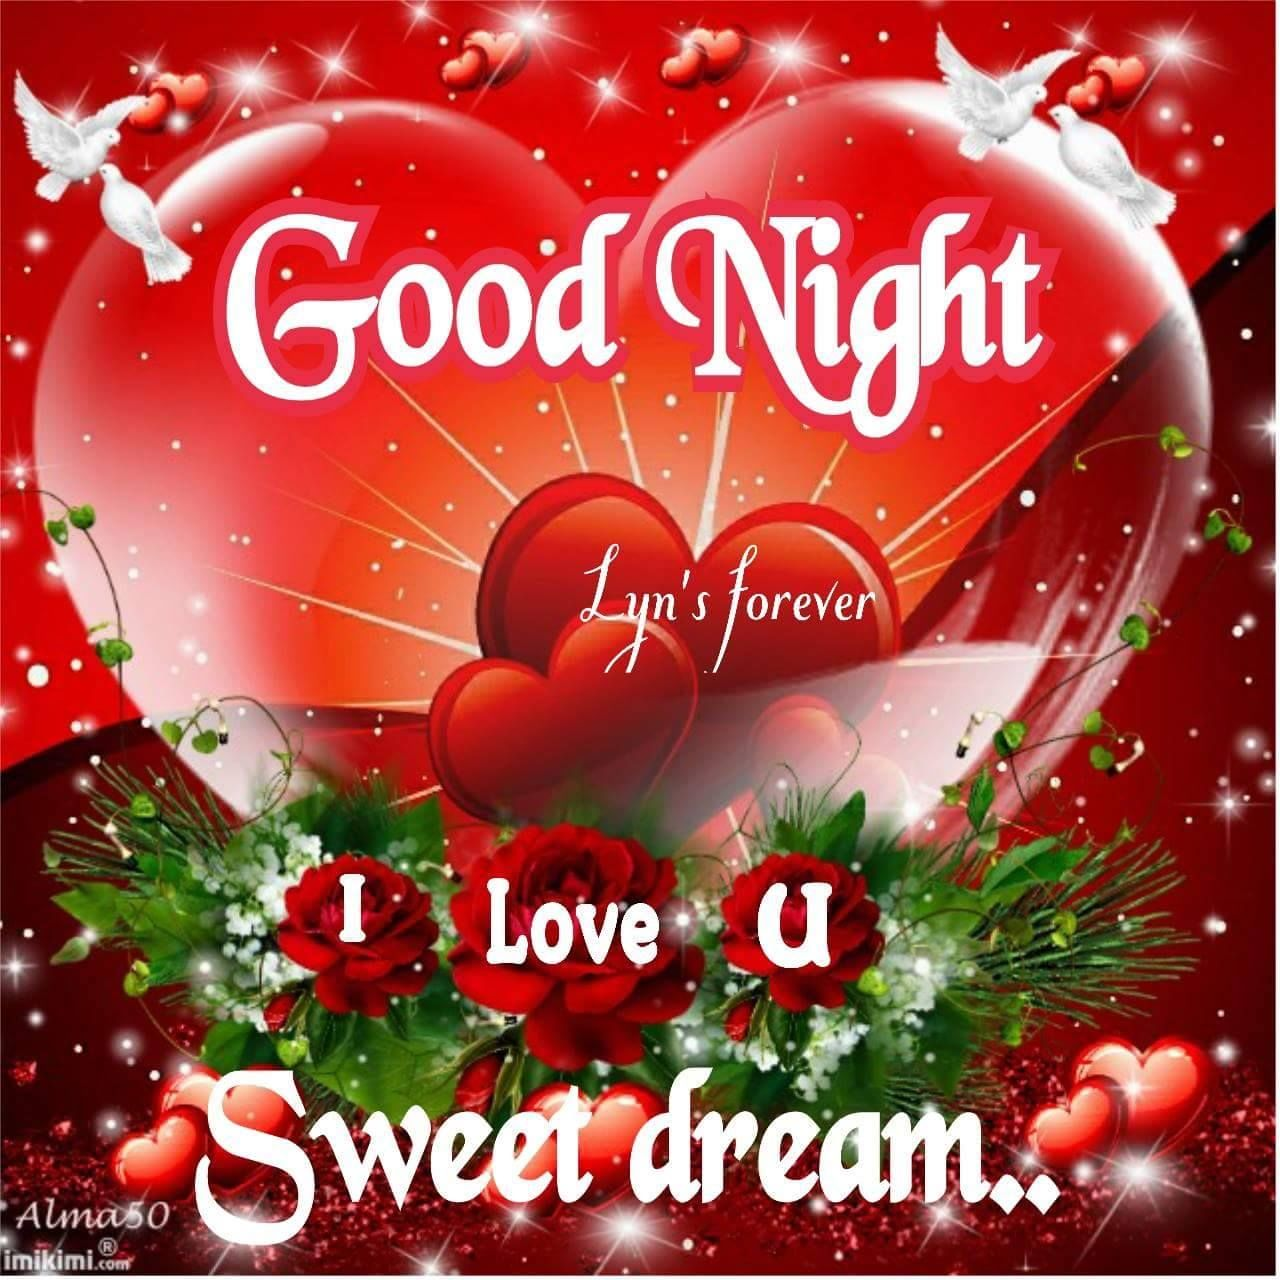 Love U Good Night Quote Pictures Photos And Images For Facebook Tumblr Pinterest And Twitter